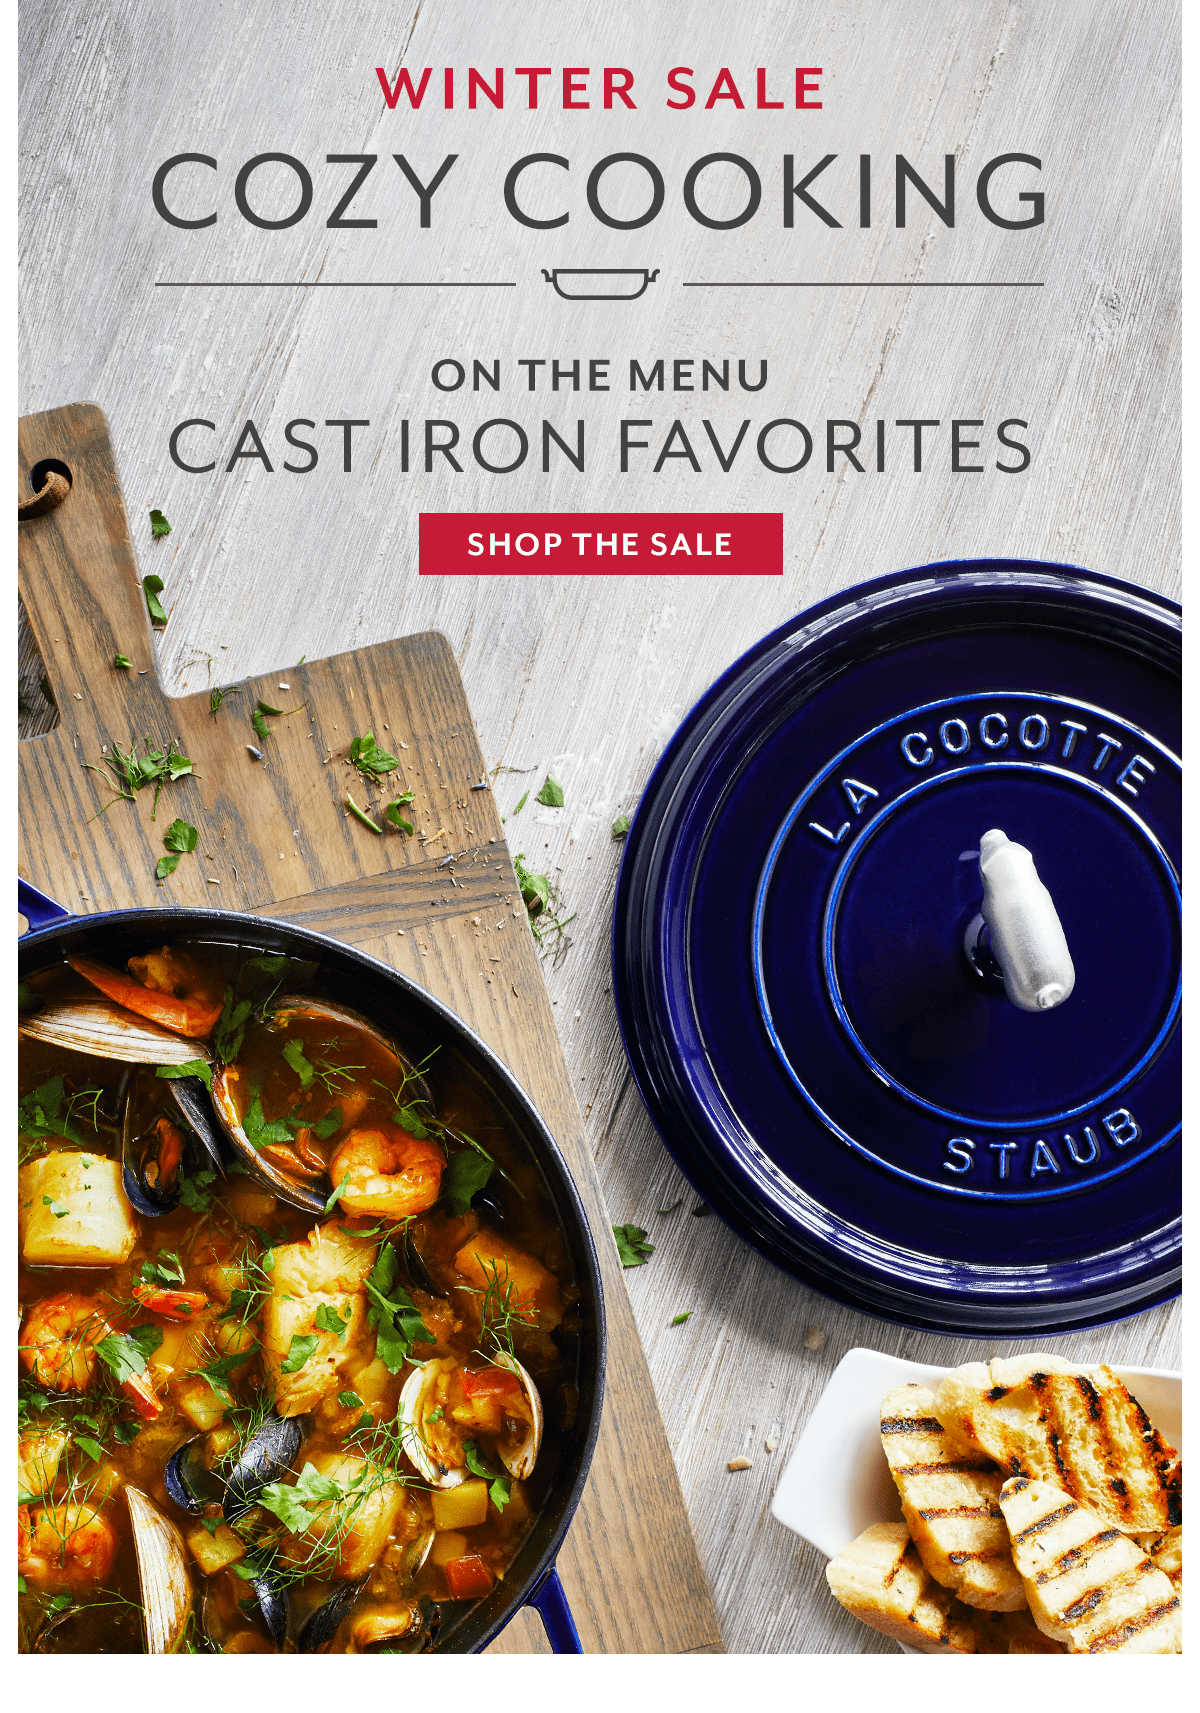 Cozy Cooking • Cast Iron Favorites